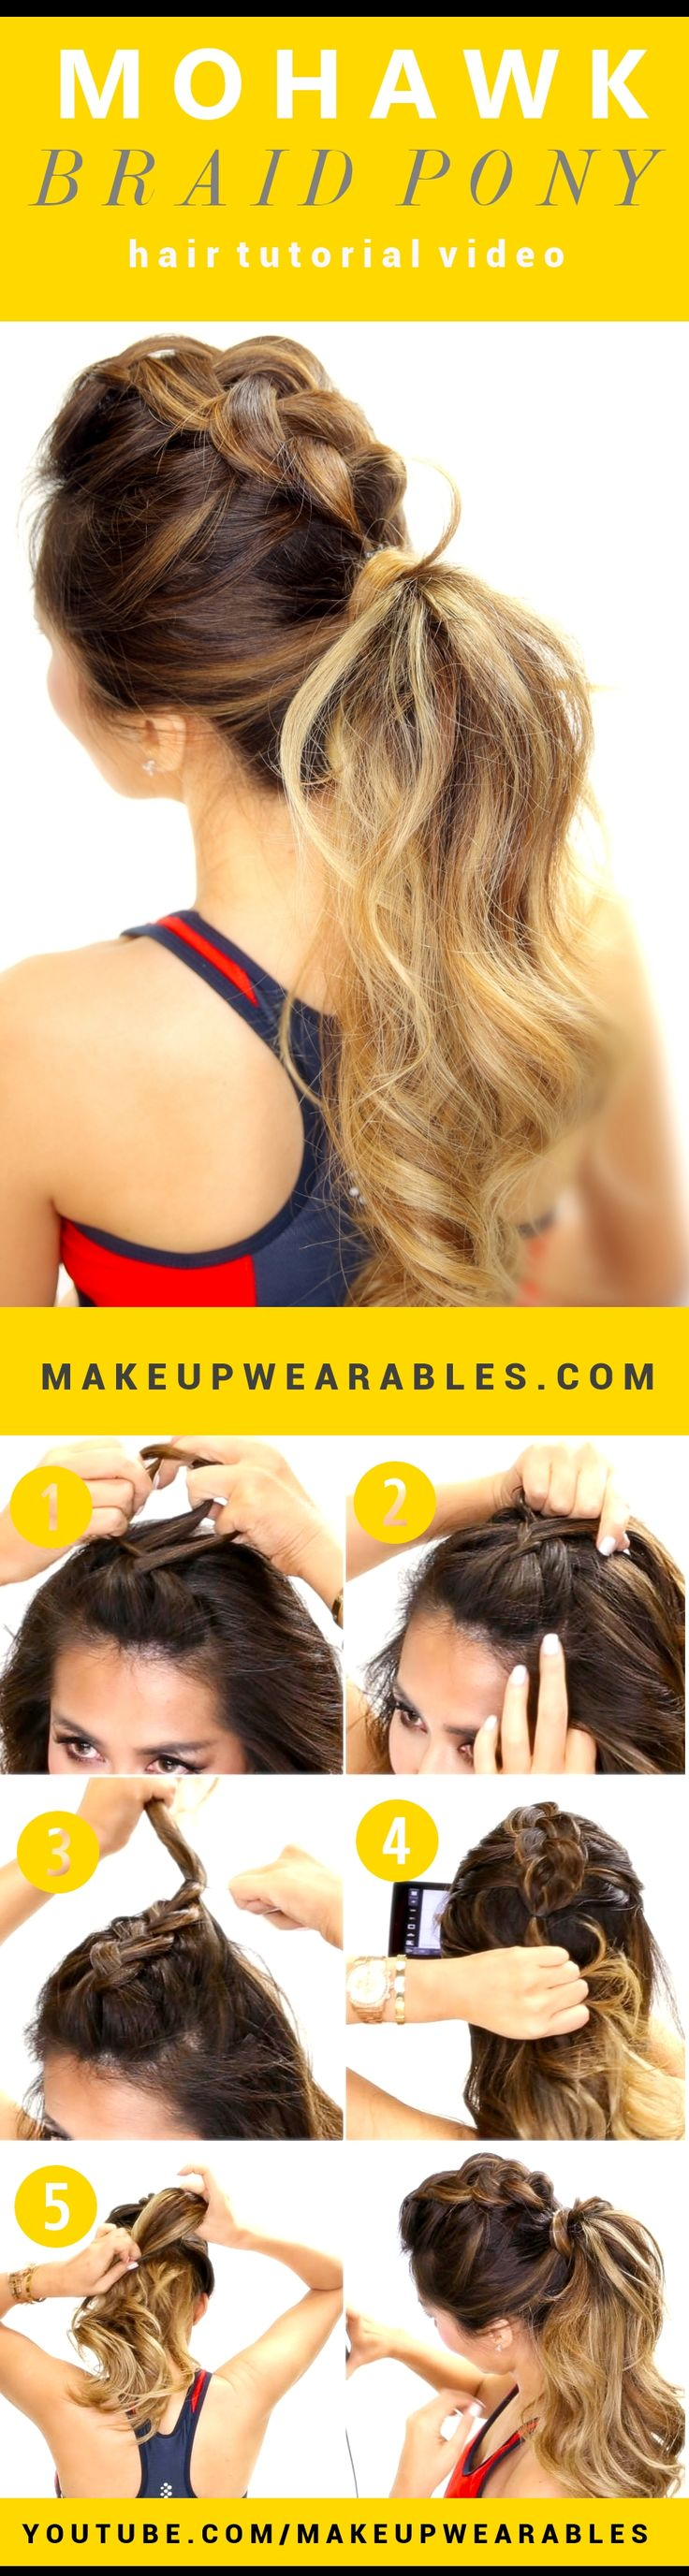 #hairstyle #hairdo #tutorial #howto #DIY